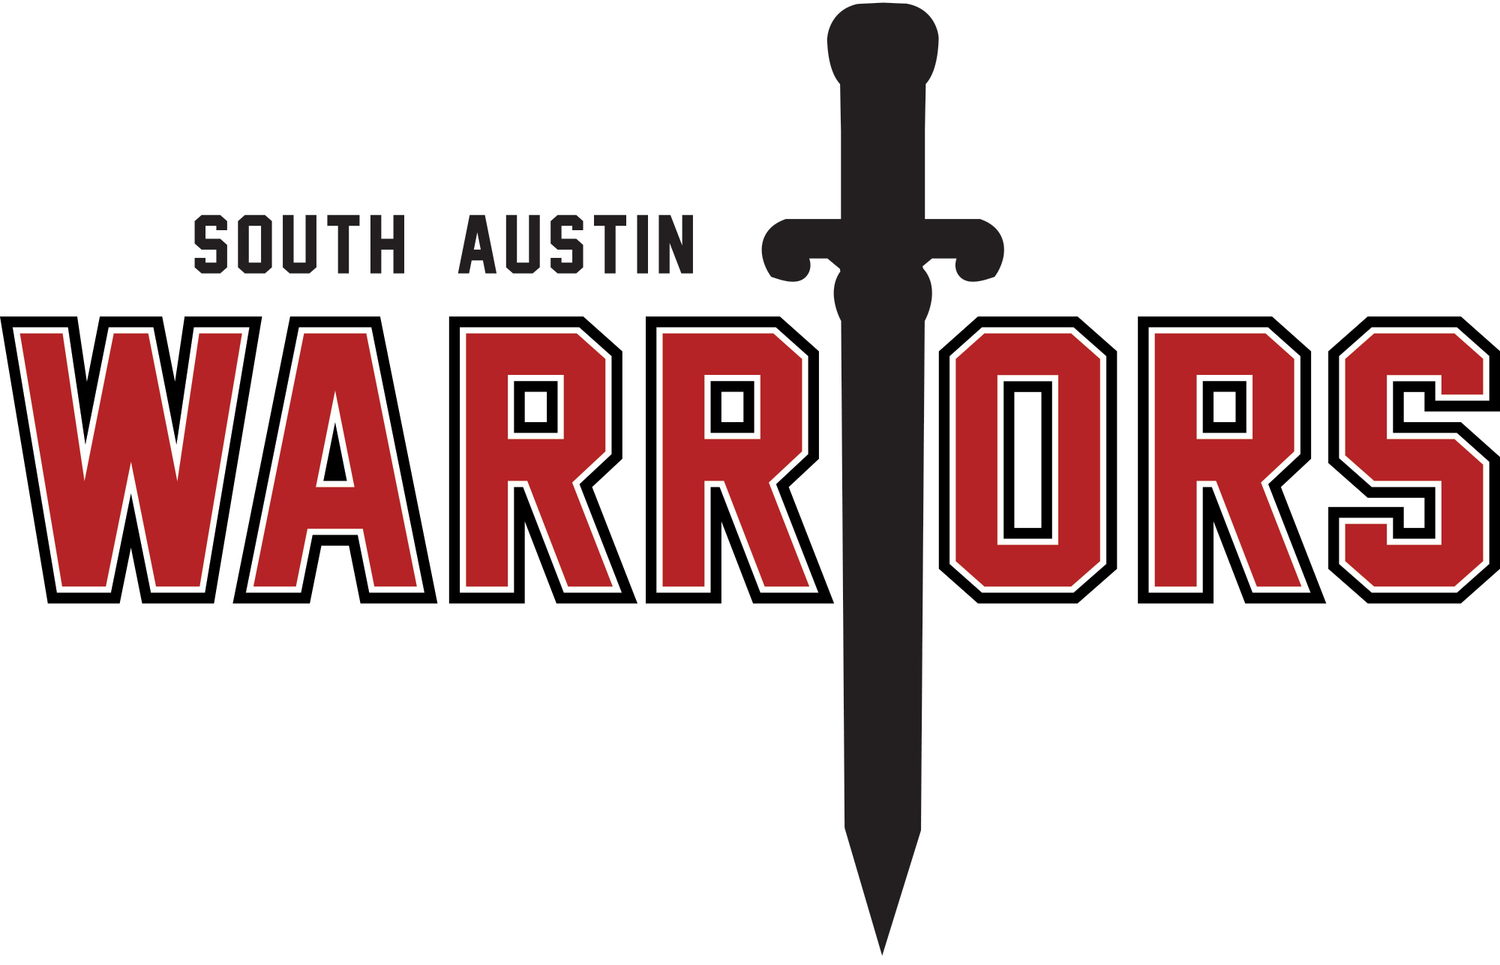 South Austin Warriors